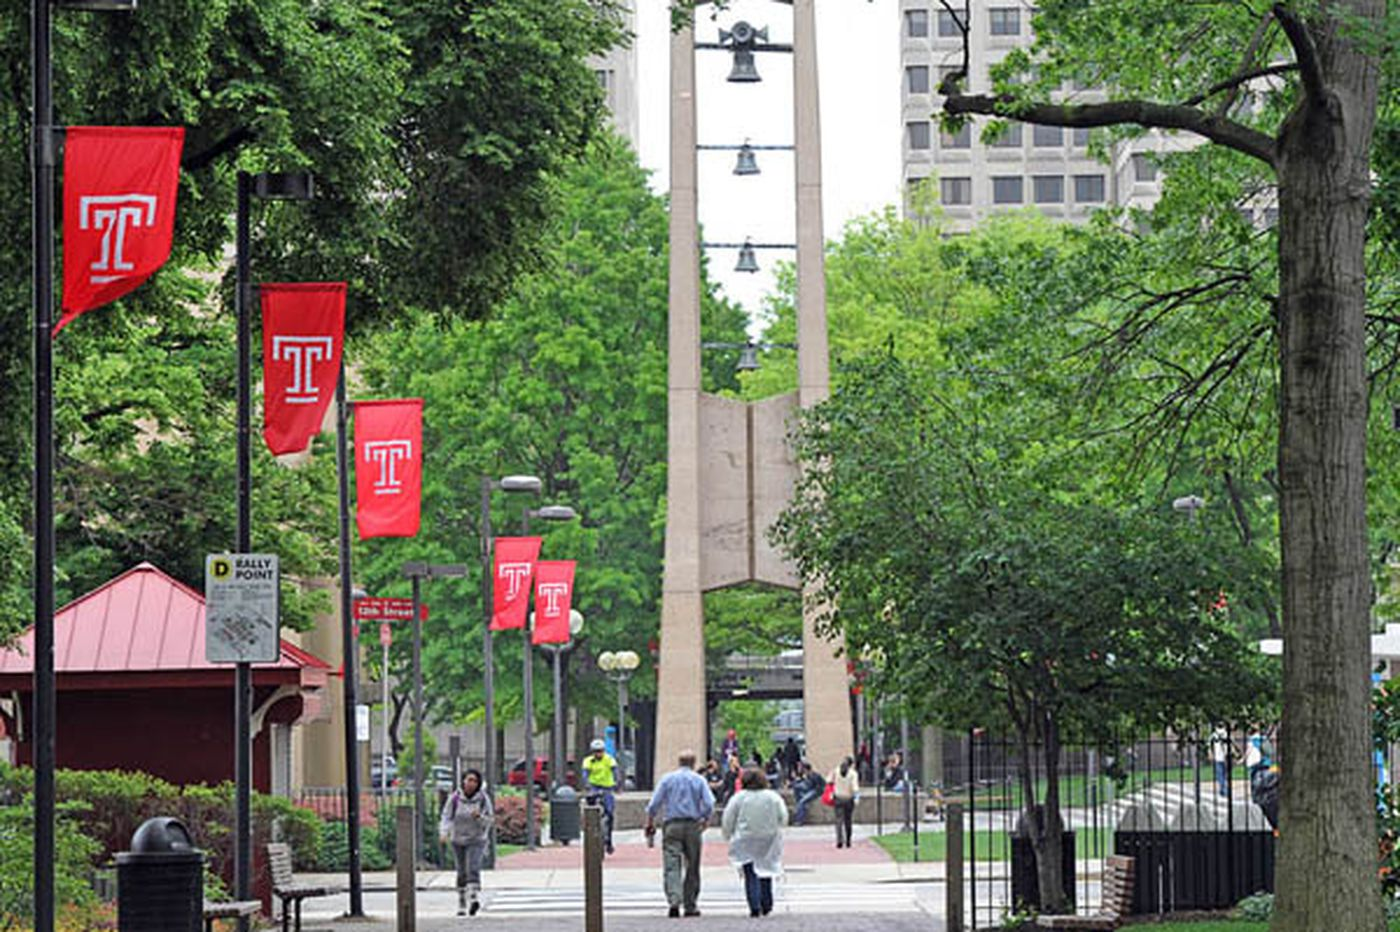 Mumps outbreak at Temple adds to growing number of cases on college campus